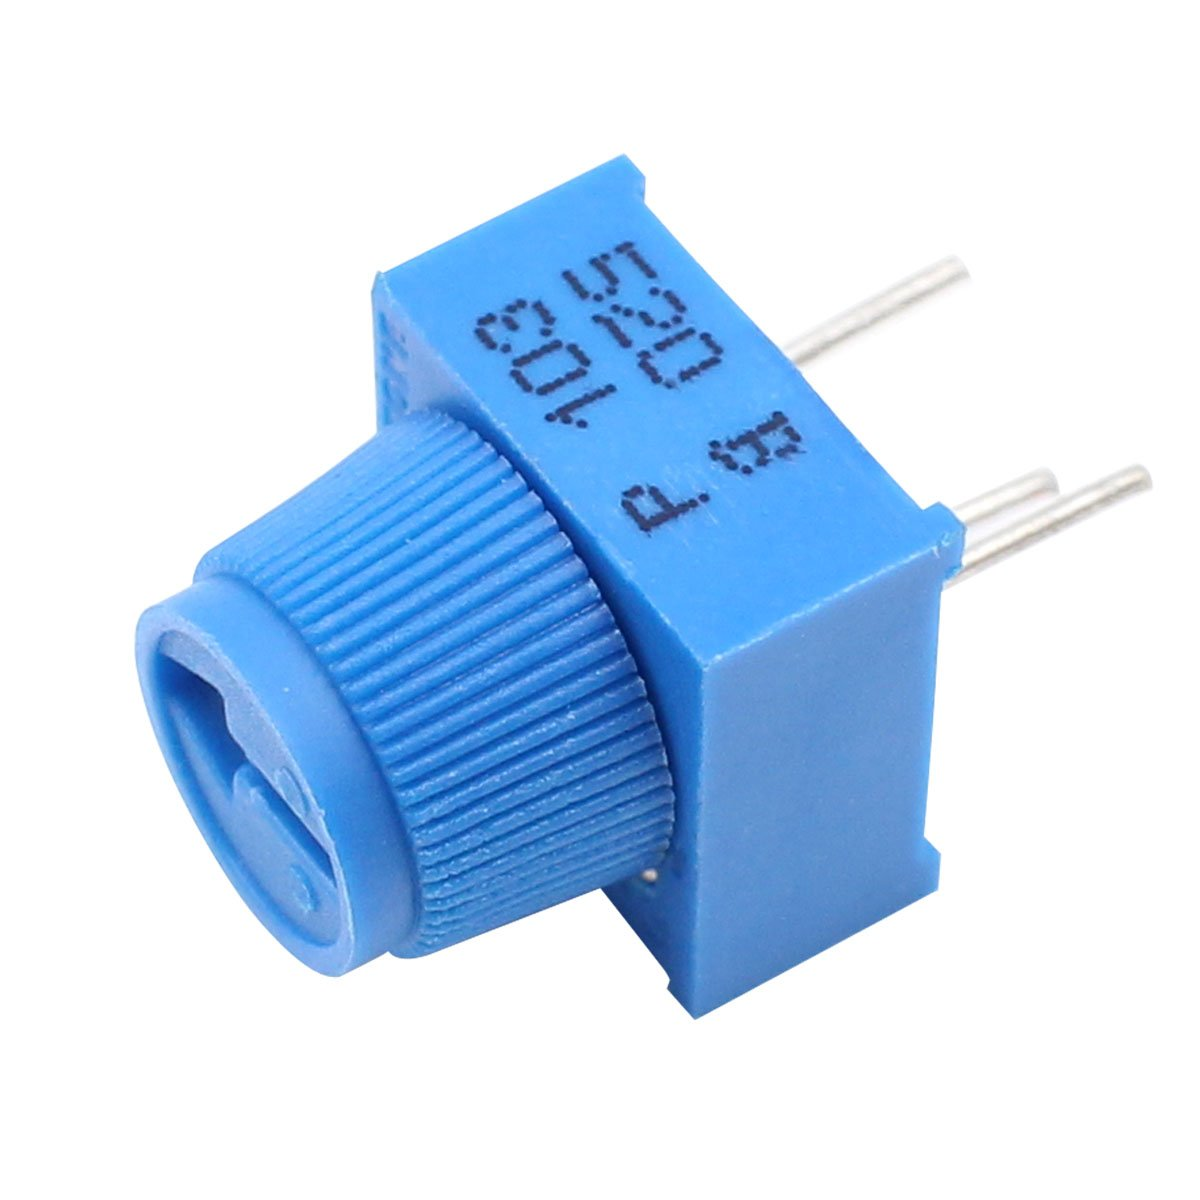 Best Rated In Variable Resistors Helpful Customer Reviews 10k Potentiometer Wiring Diagram Helloyee Ohm Breadboard Trim With Knob For Arduino Pack Of 10 Product